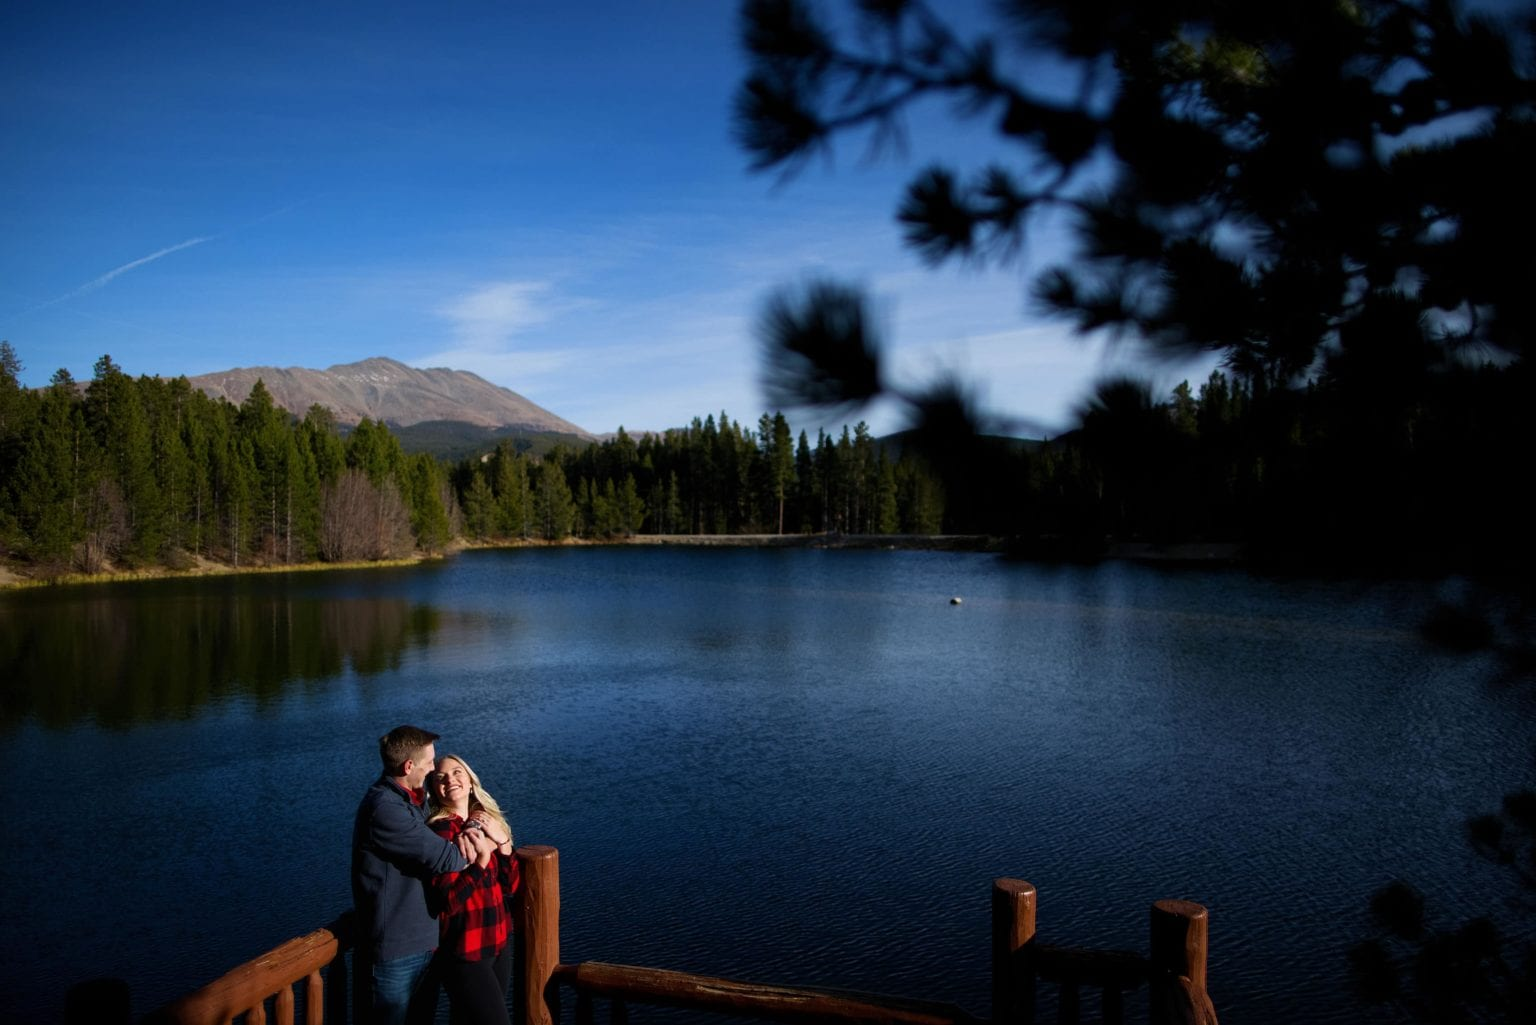 Joseph and Chloe share a moment on the dock at Sawmill Reservoir in Breckenridge during their engagement photos